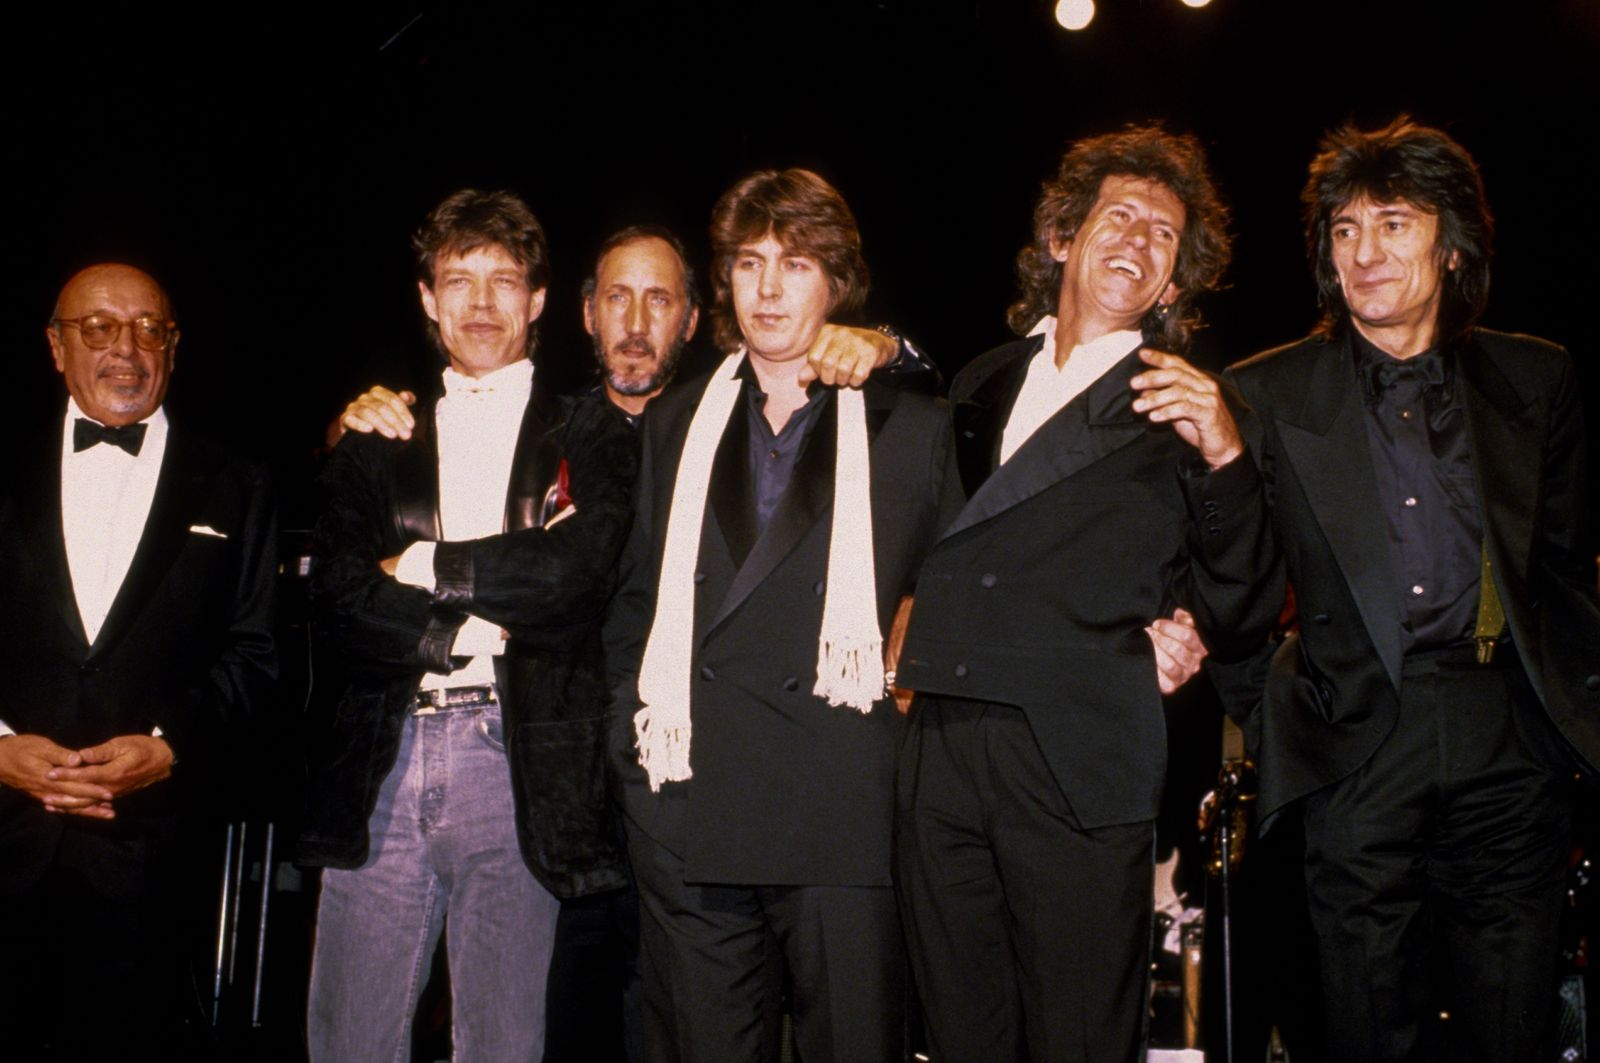 Pete Townshend - 1989 Rock n Roll Hall of Fame Induction Ceremony